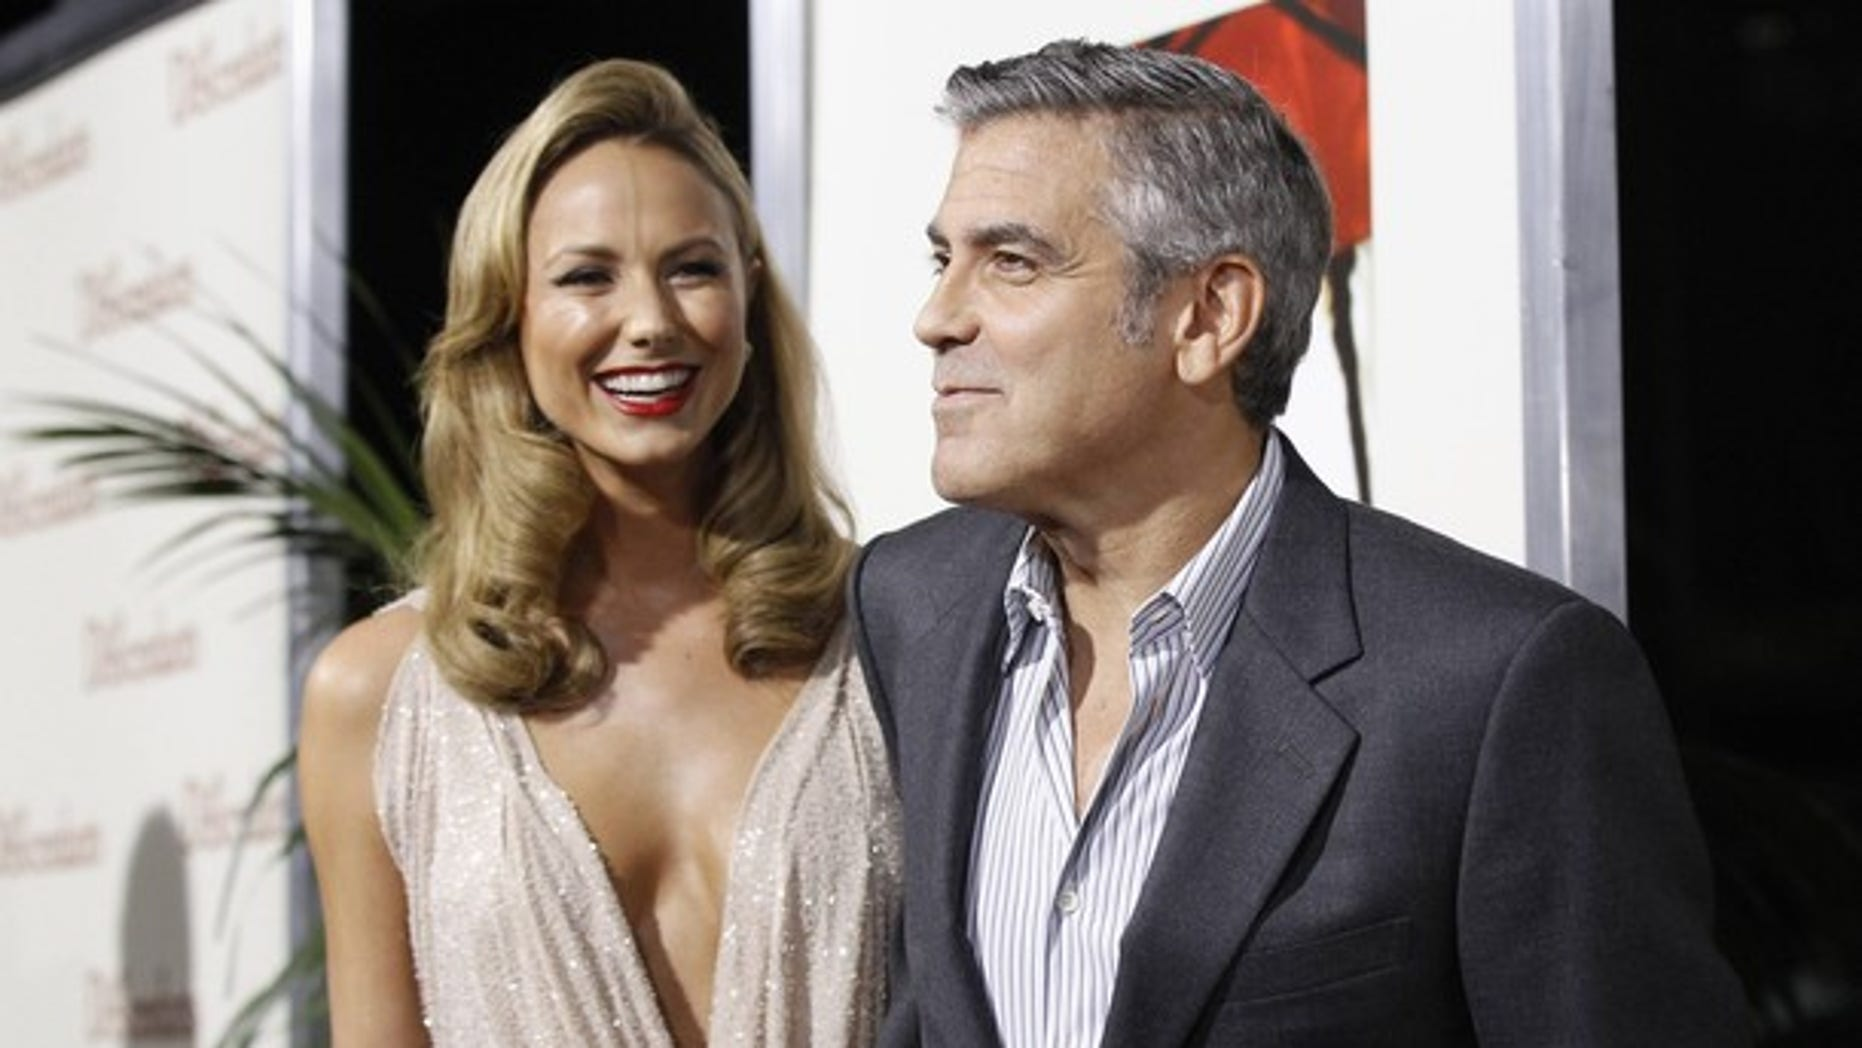 """Cast member George Clooney and actress Stacy Keibler arrive at the premiere of """"The Descendants"""" at the Samuel Goldwyn Theater in Beverly Hills, California November 15, 2011. The movie opens in the U.S. on Wednesday.  REUTERS/Mario Anzuoni (UNITED STATES - Tags: ENTERTAINMENT)"""